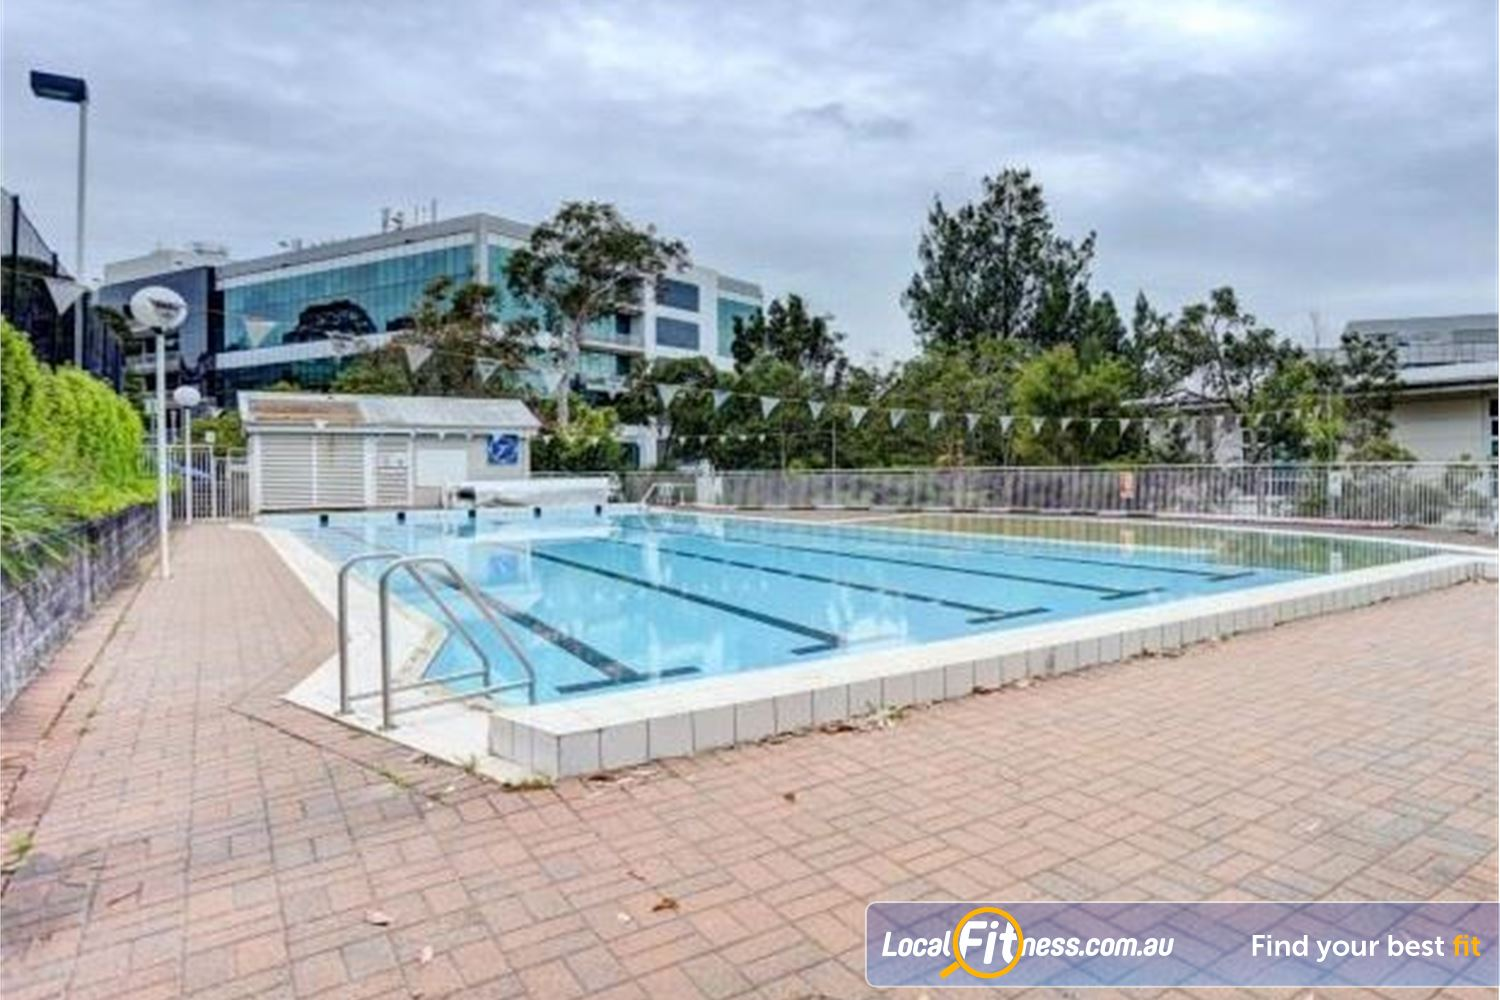 North Ryde Fitness & Aquatic North Ryde Take a dip in our multi-lane North Ryde swimming pool.